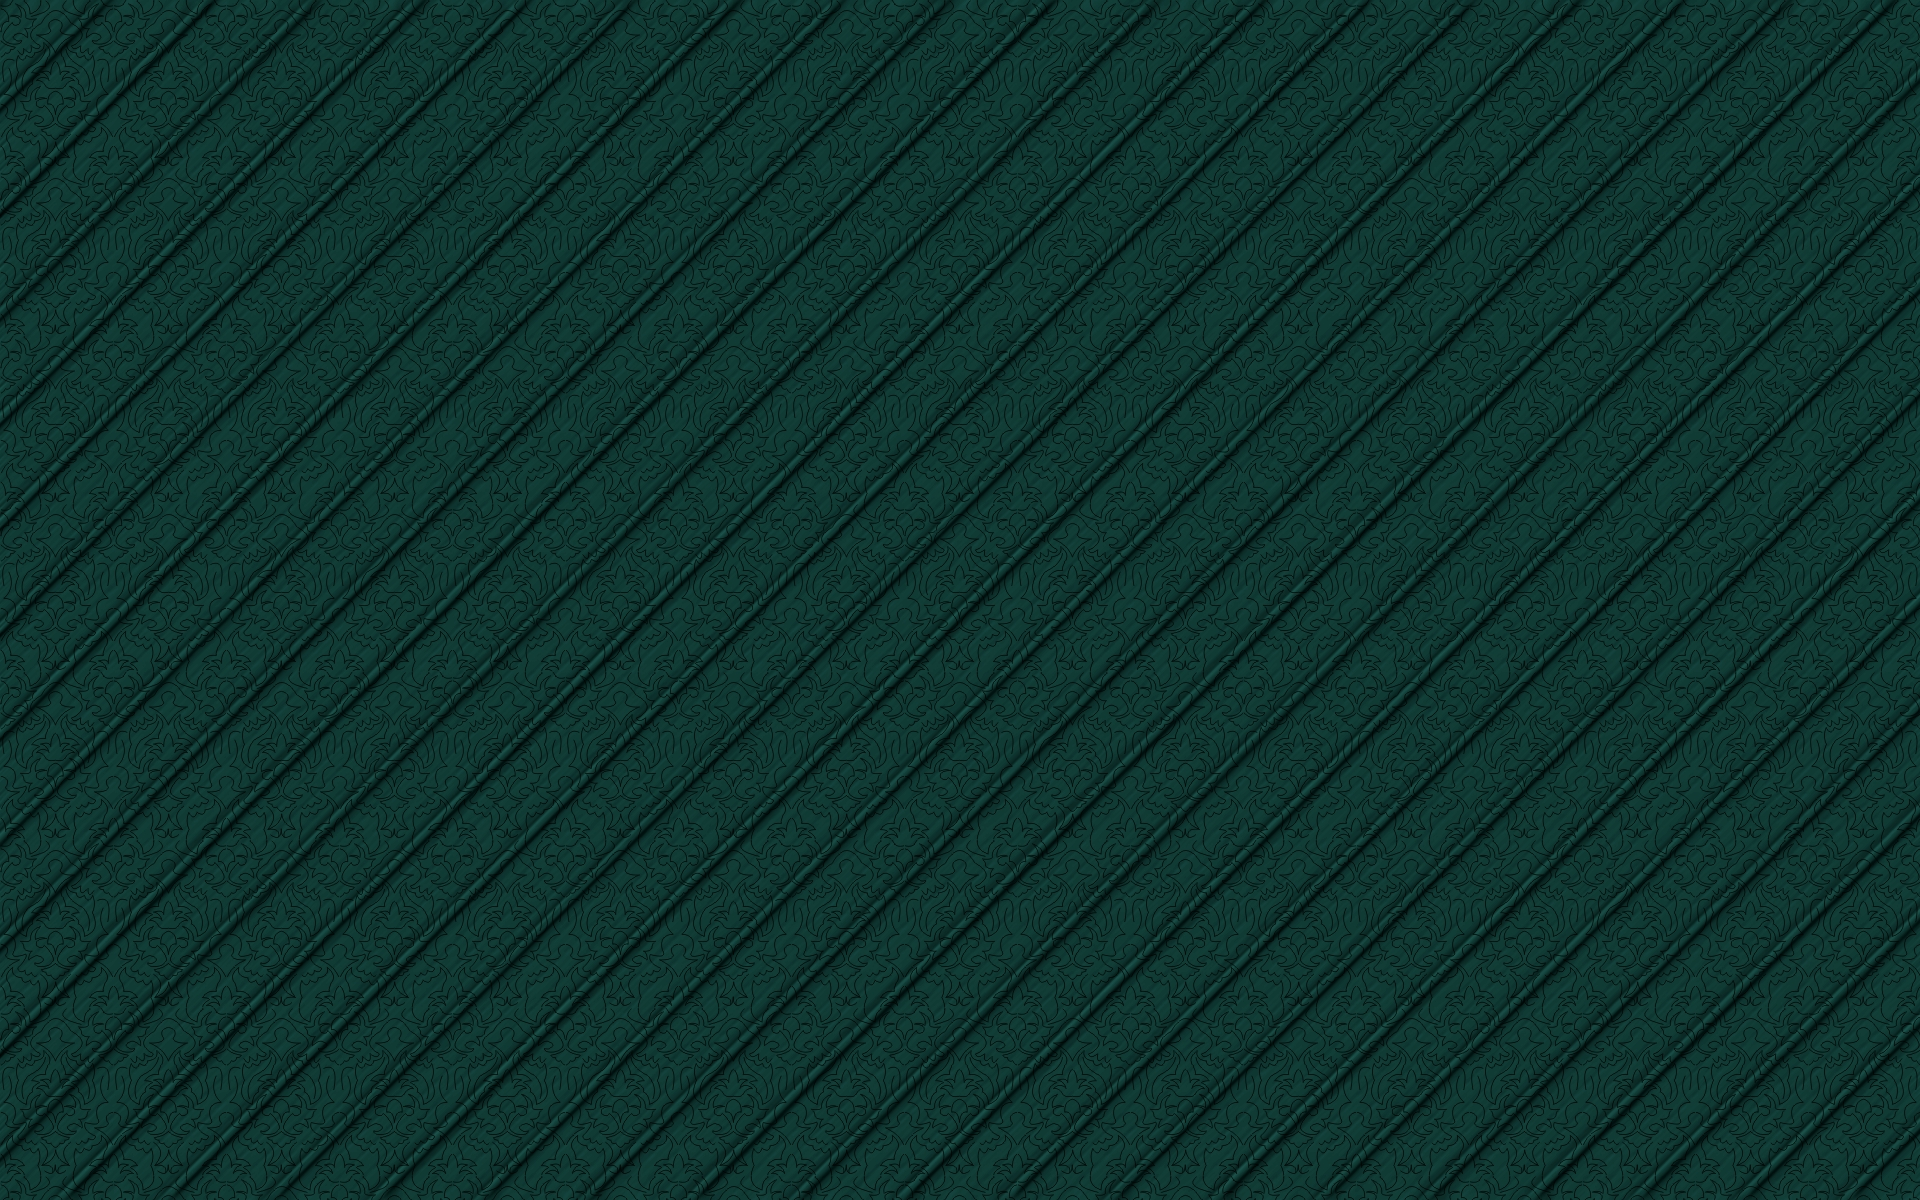 green daigonal lines, floor, texture, lines texture, backgrounds, background for website